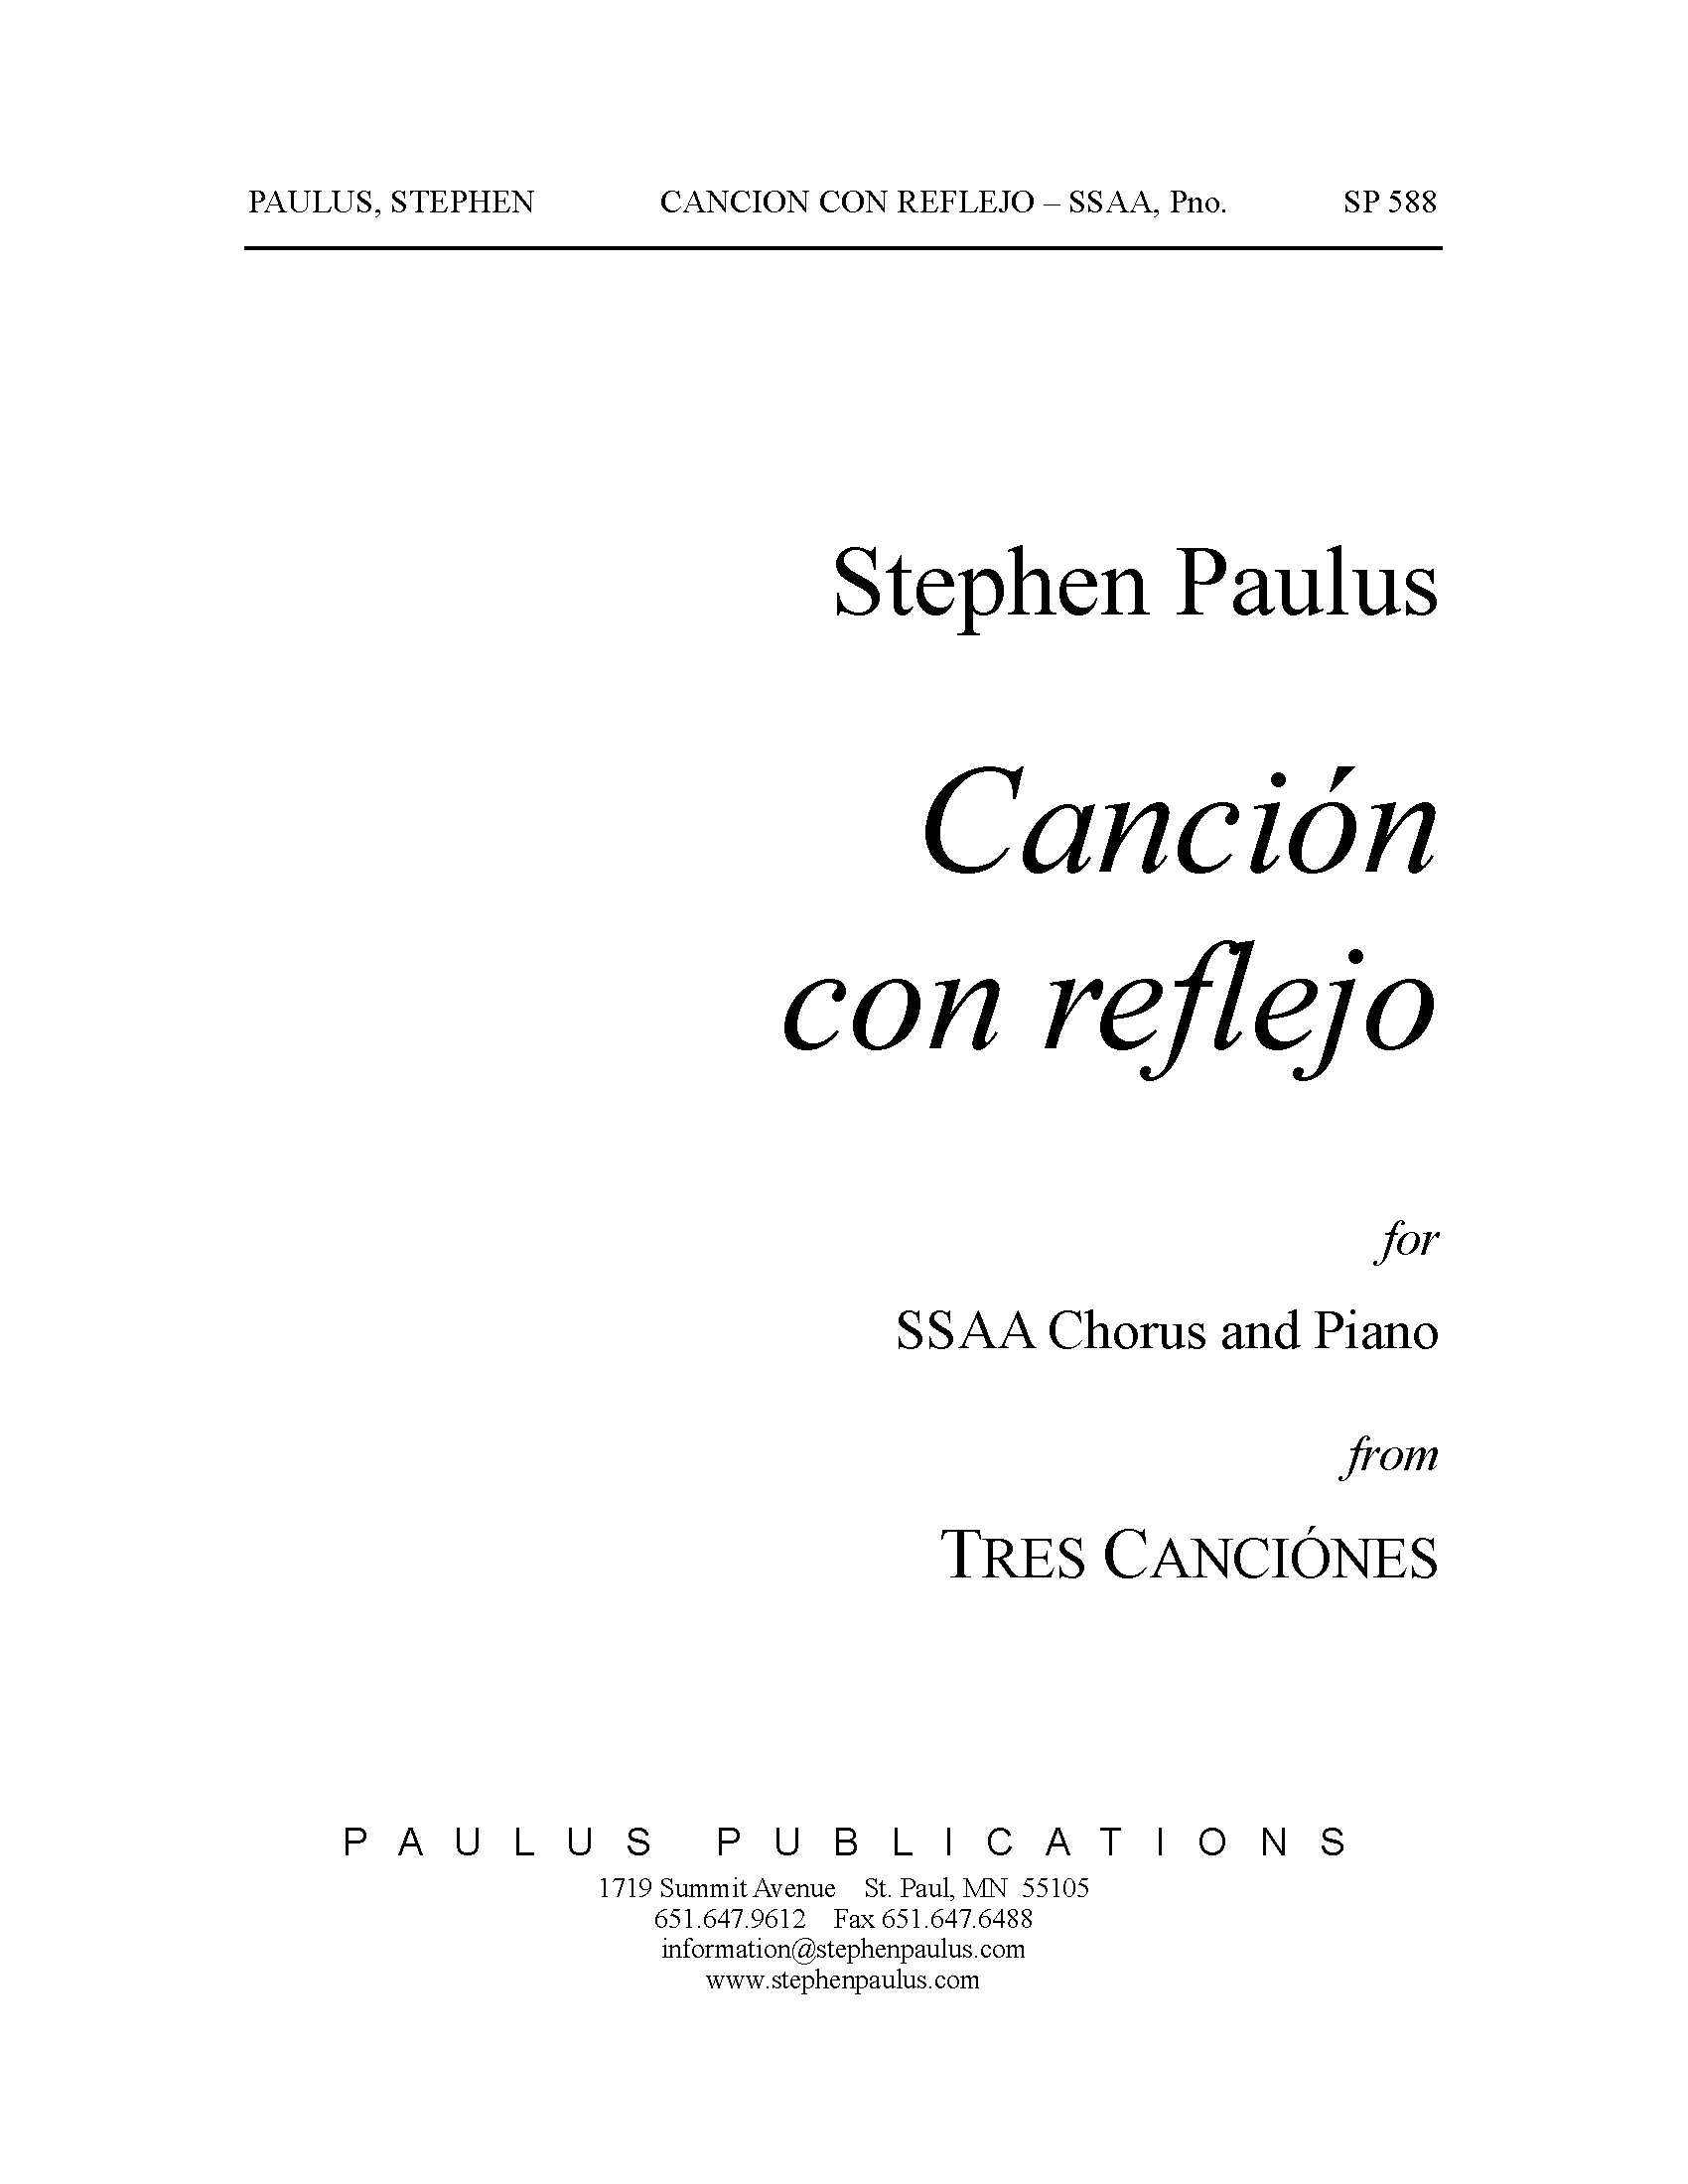 Canción con reflejo (from Tres Canciones) for SSAA Chorus & Piano